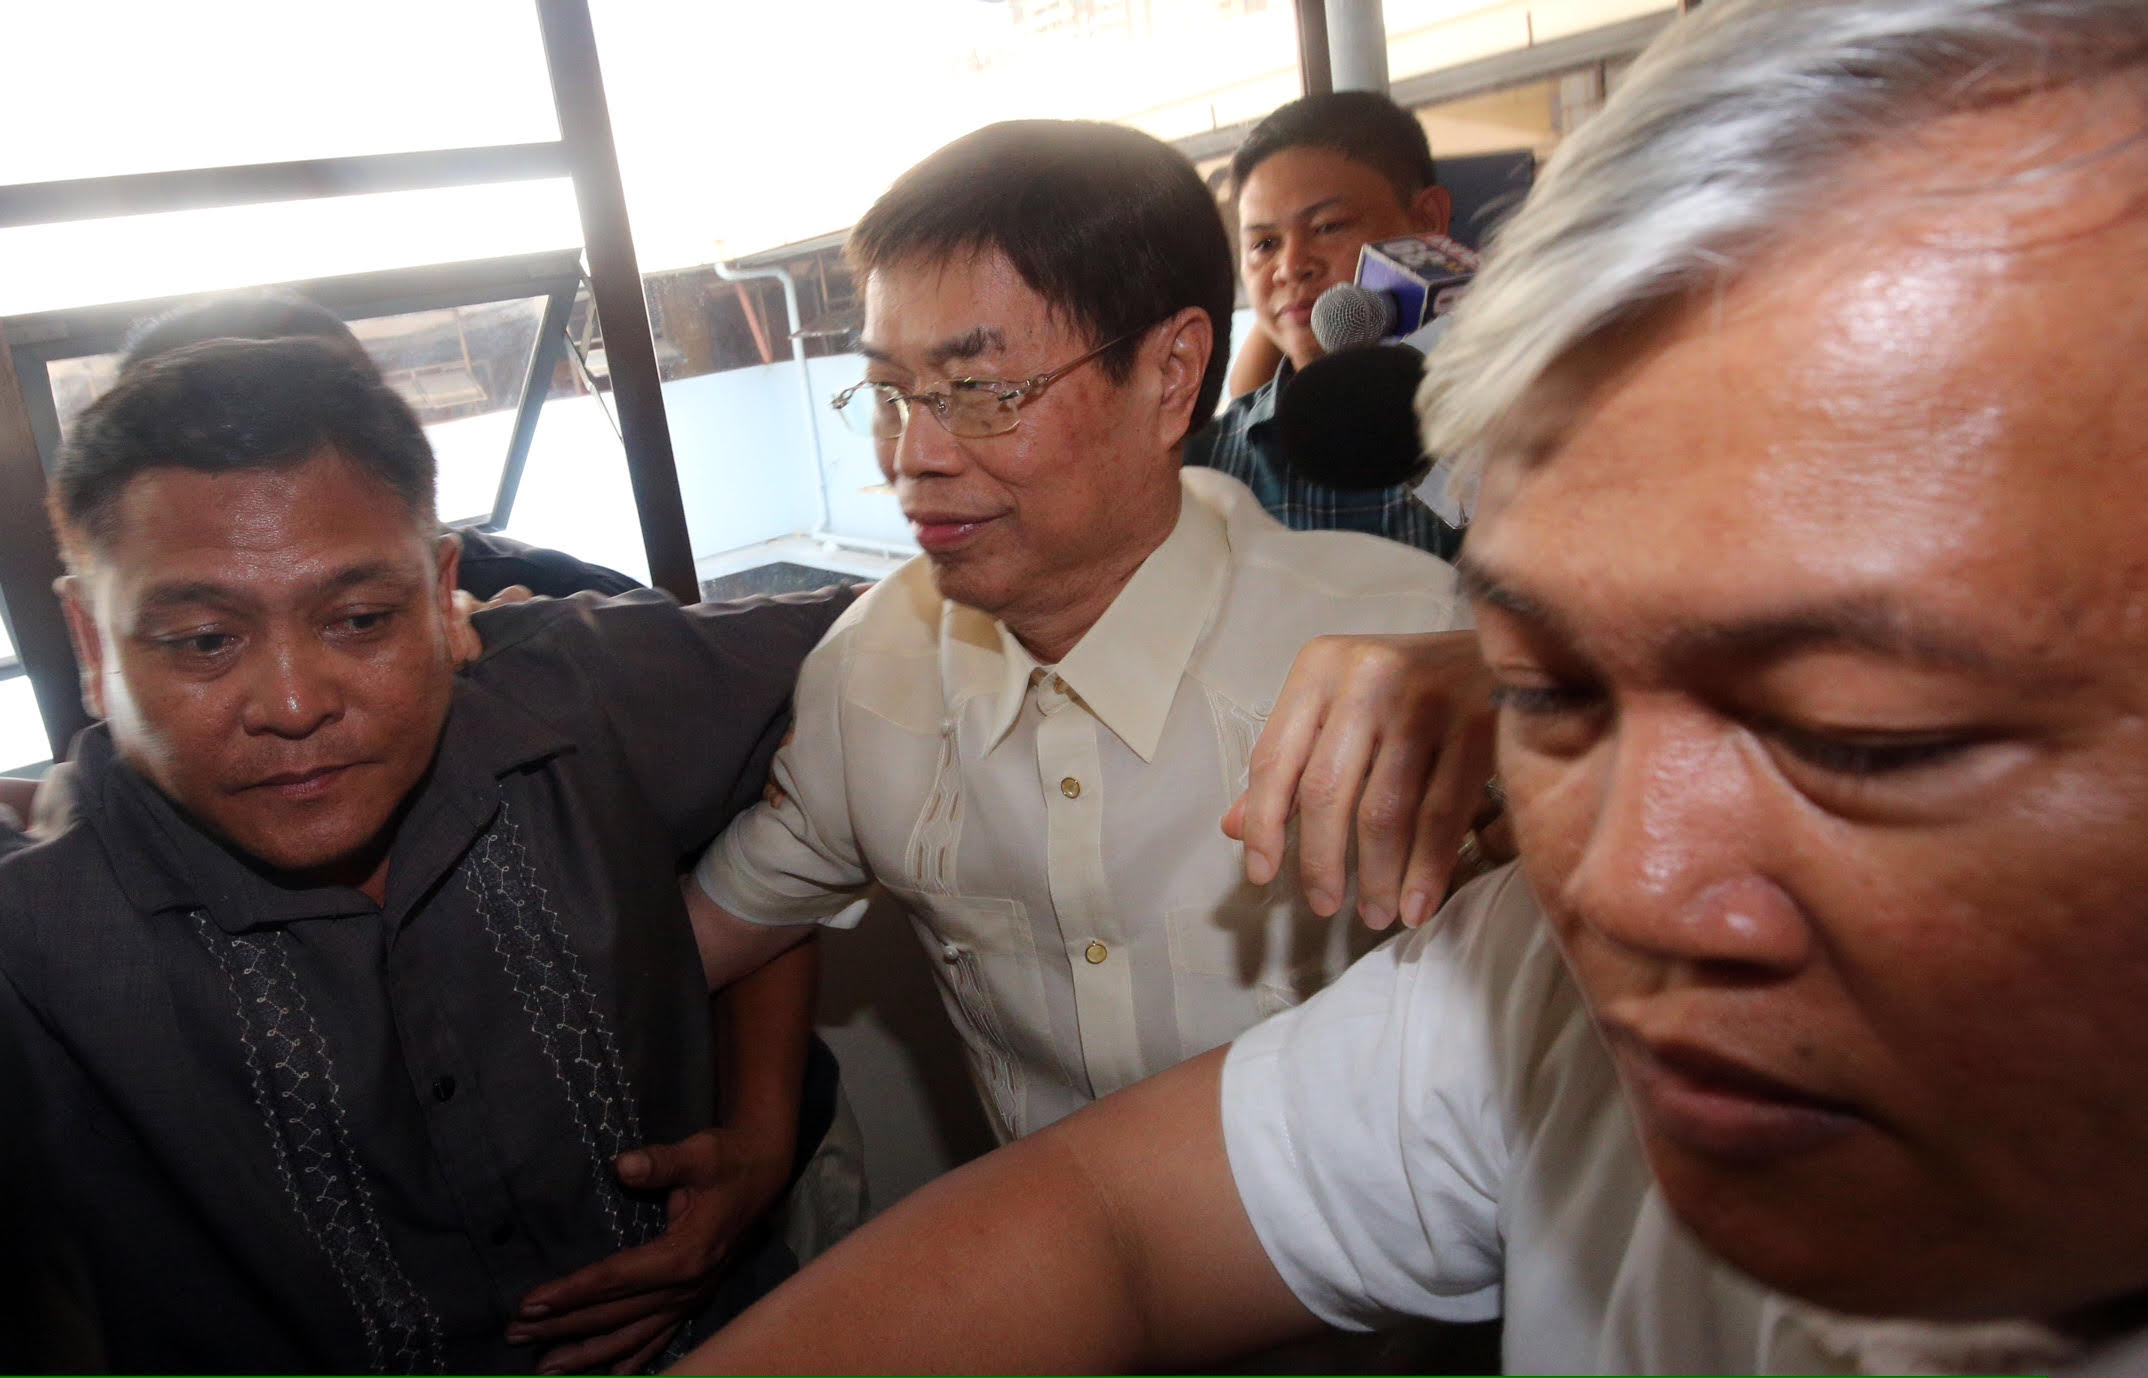 DRUG LORD? Businessman Peter Lim is escorted by security after he shows up at the National Bureau of Investigation in Manila on July 21, 2016 to clear his name. Photo by Ben Nabong/Rappler